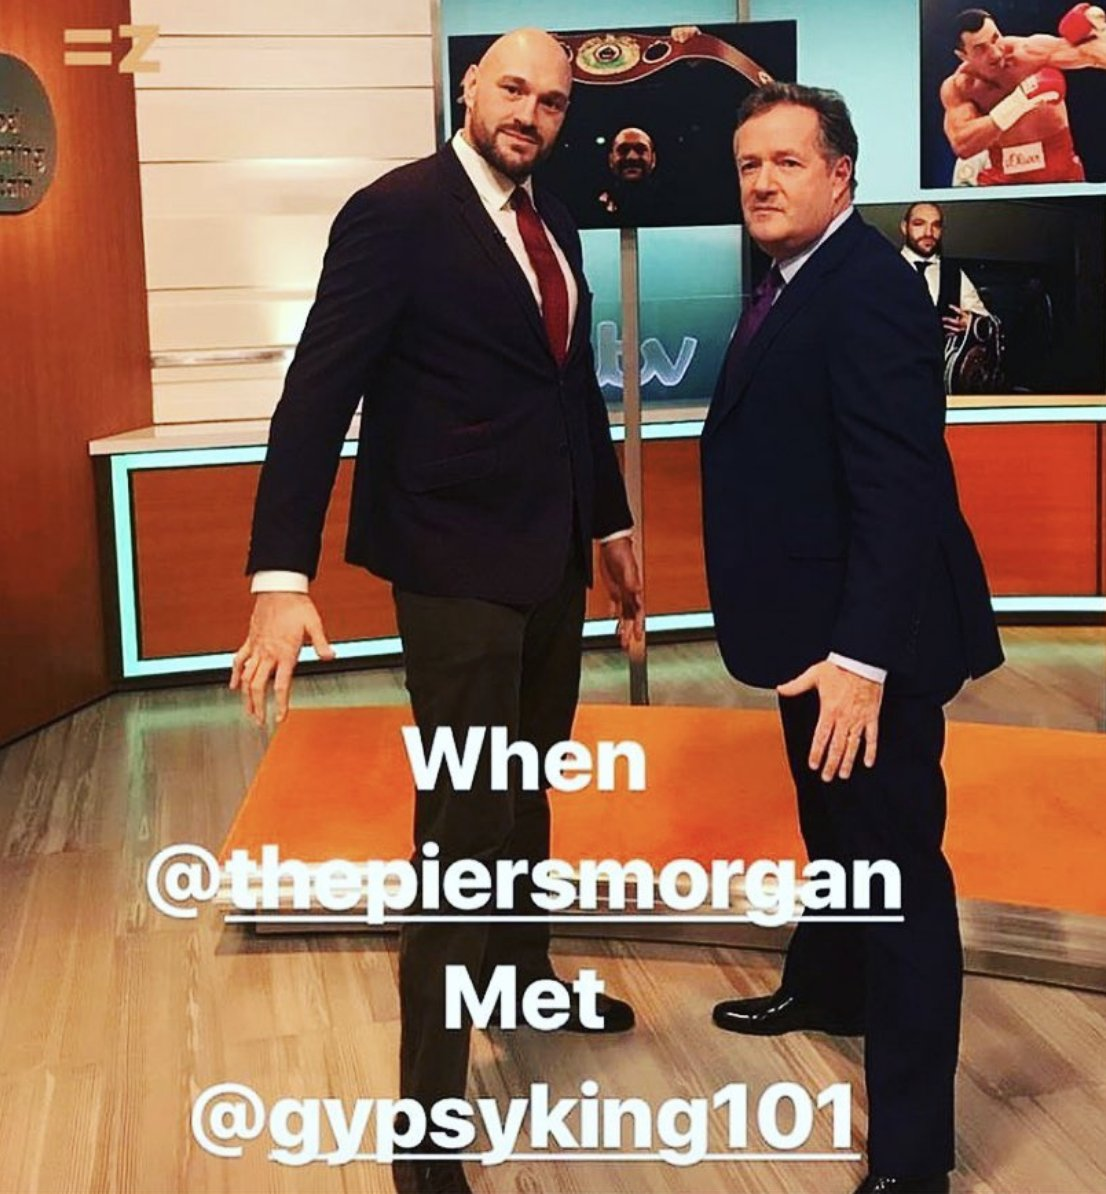 Tyson Fury Hilariously Squares Up To Piers Morgan On Good